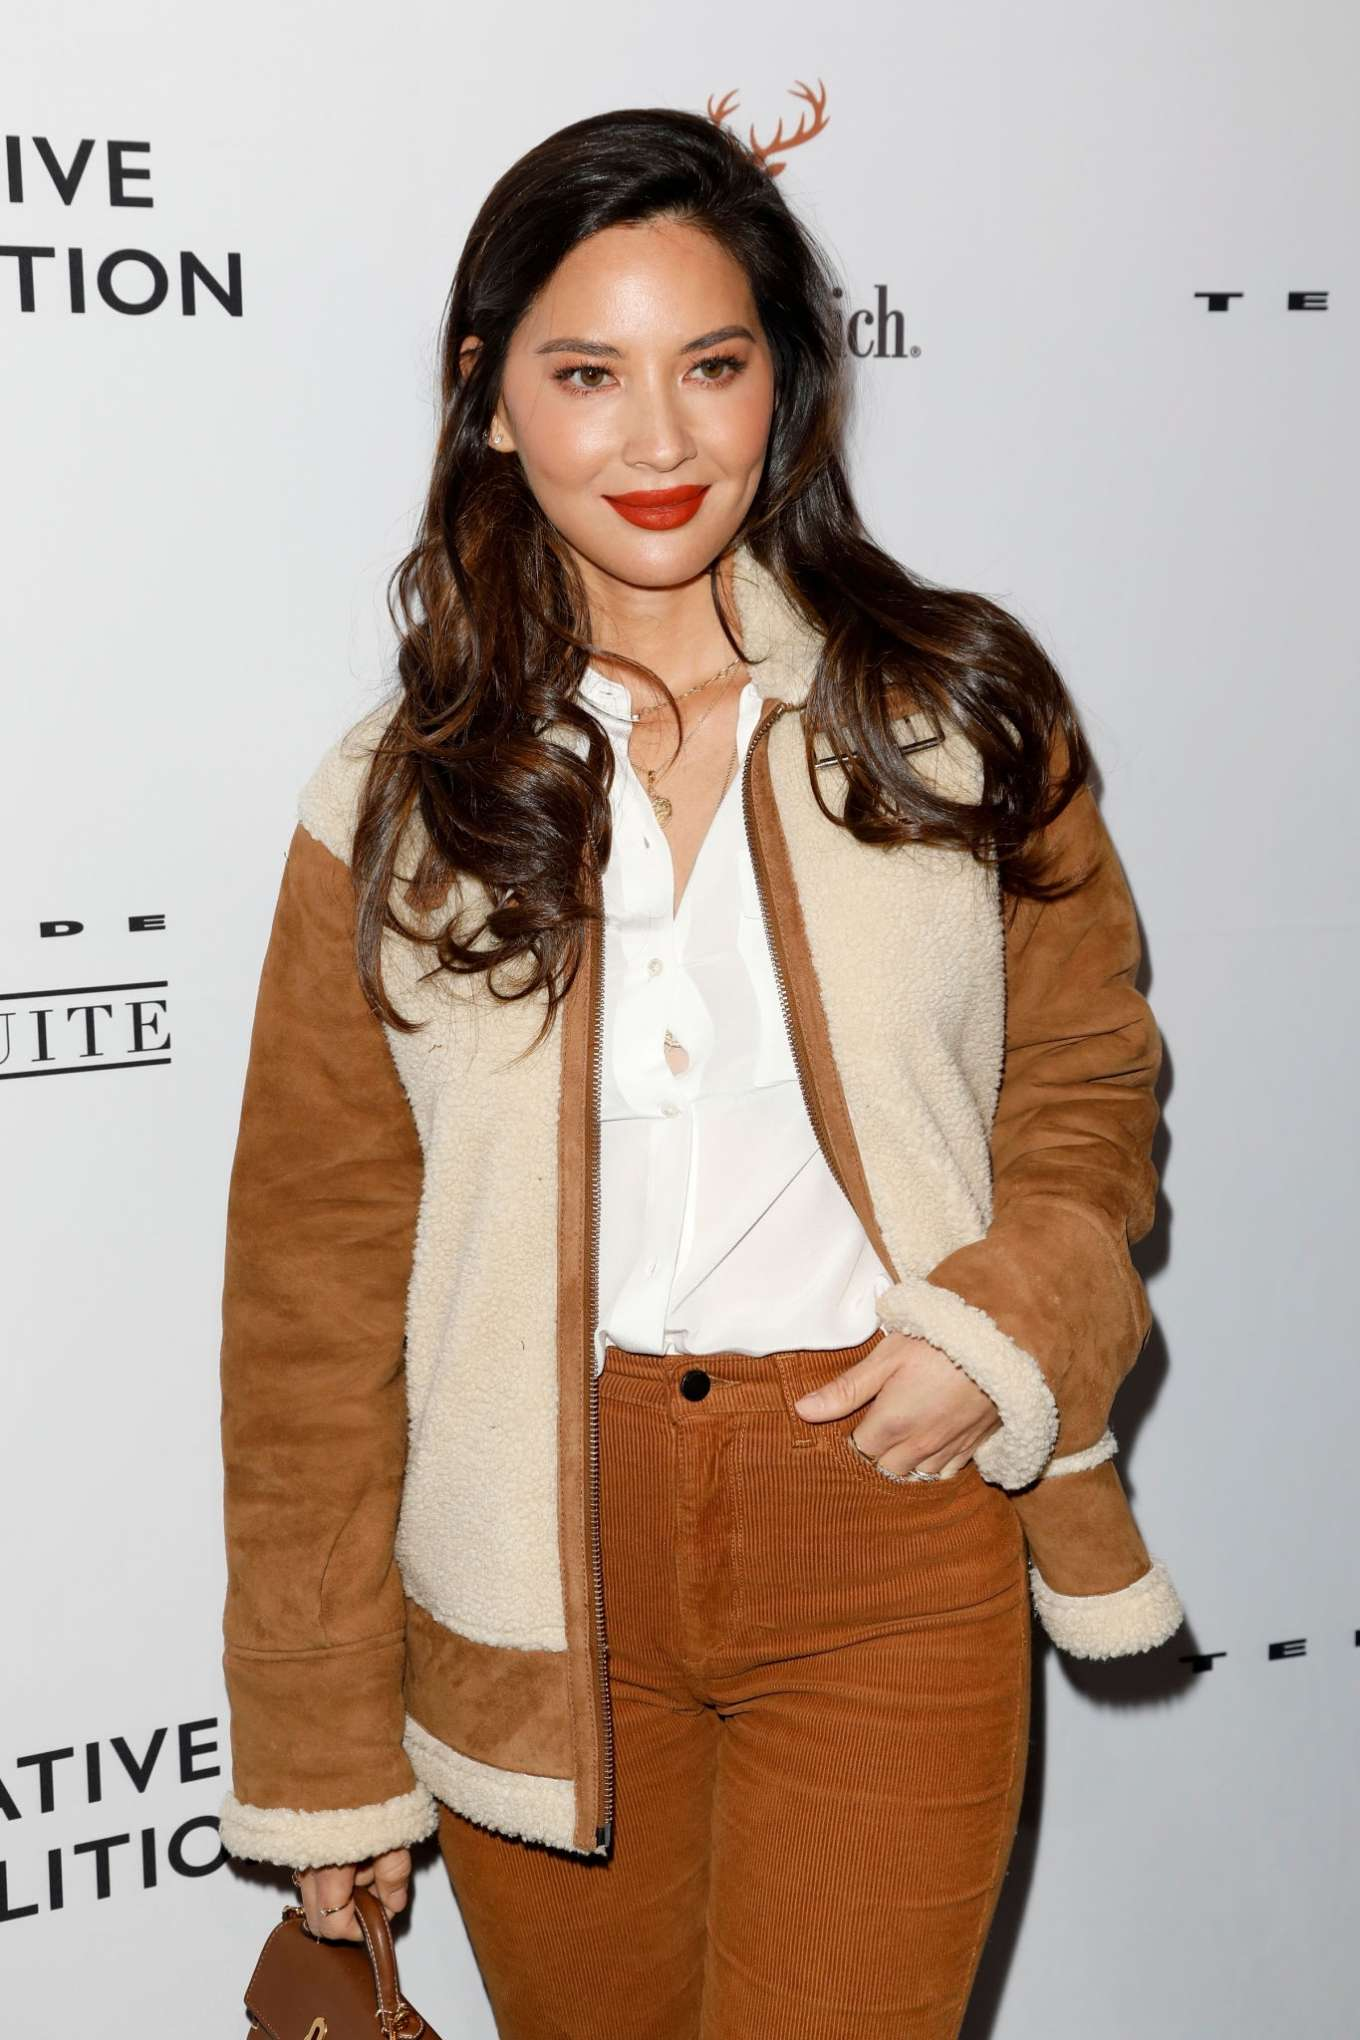 Olivia Munn donning pointy tan suede boots with high heel